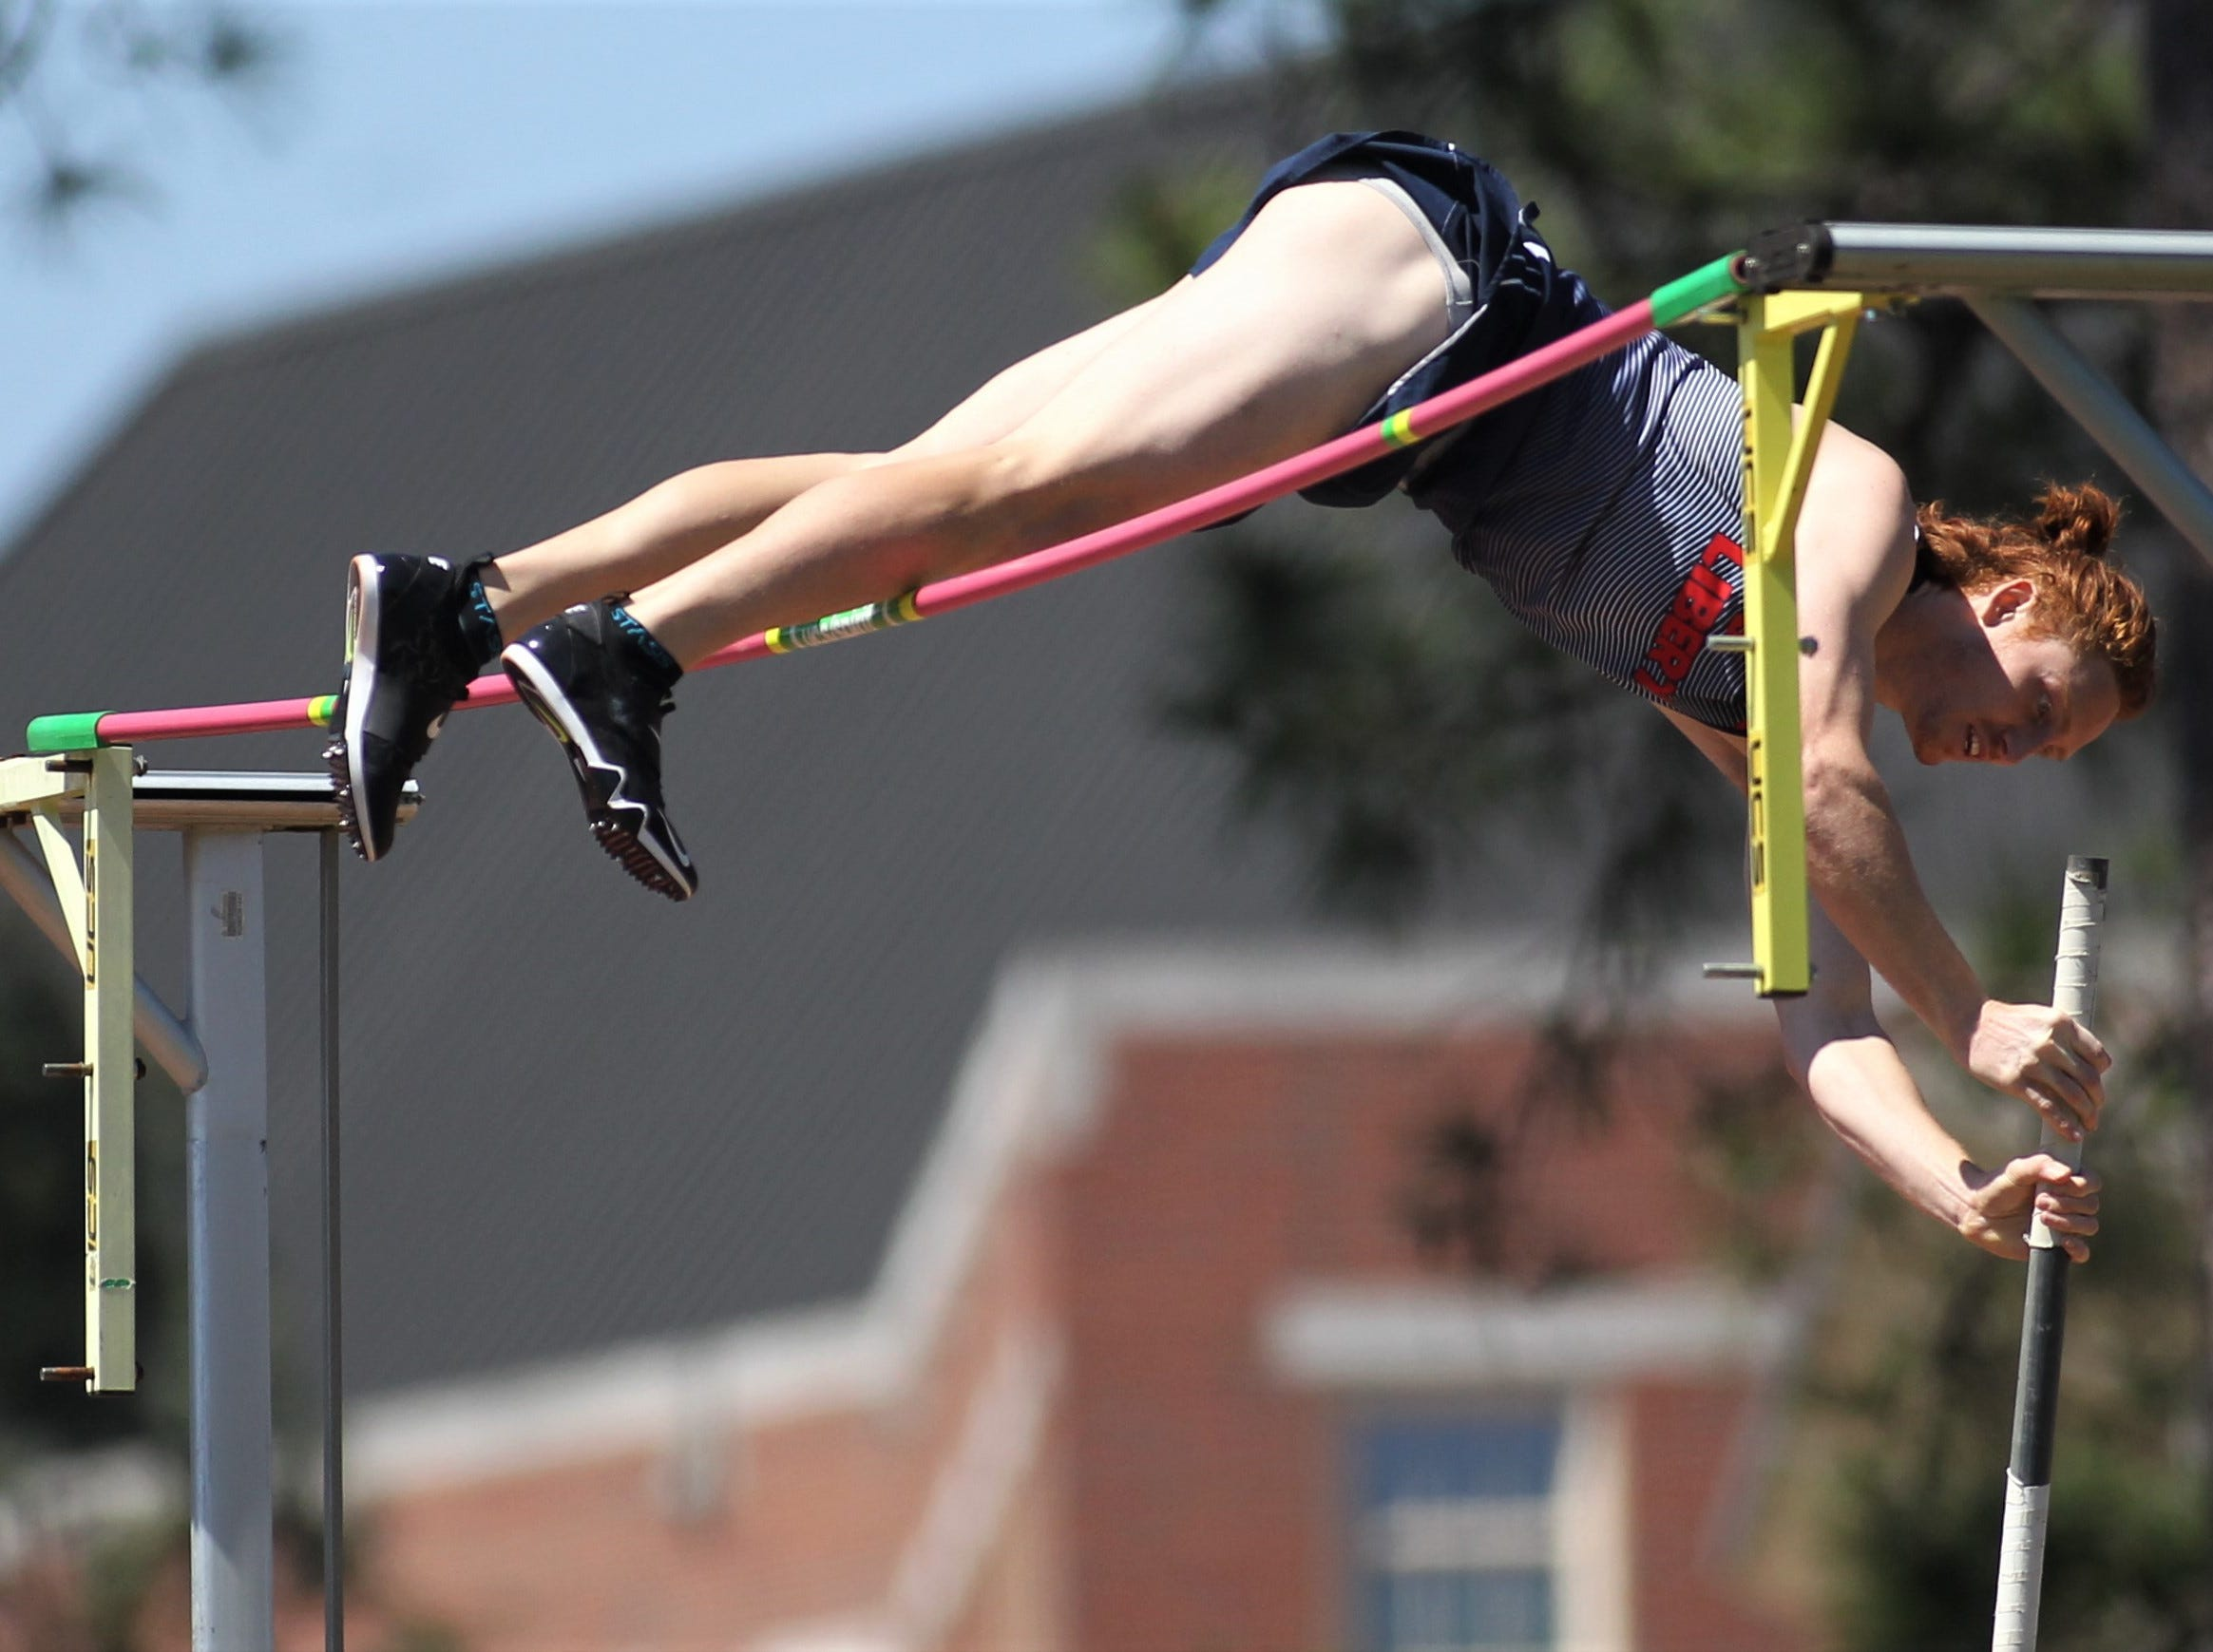 Liberty junior Reilly Stroot competes in pole vault during Friday's college portion of the FSU Relays at Mike Long Track on March 22, 2019.